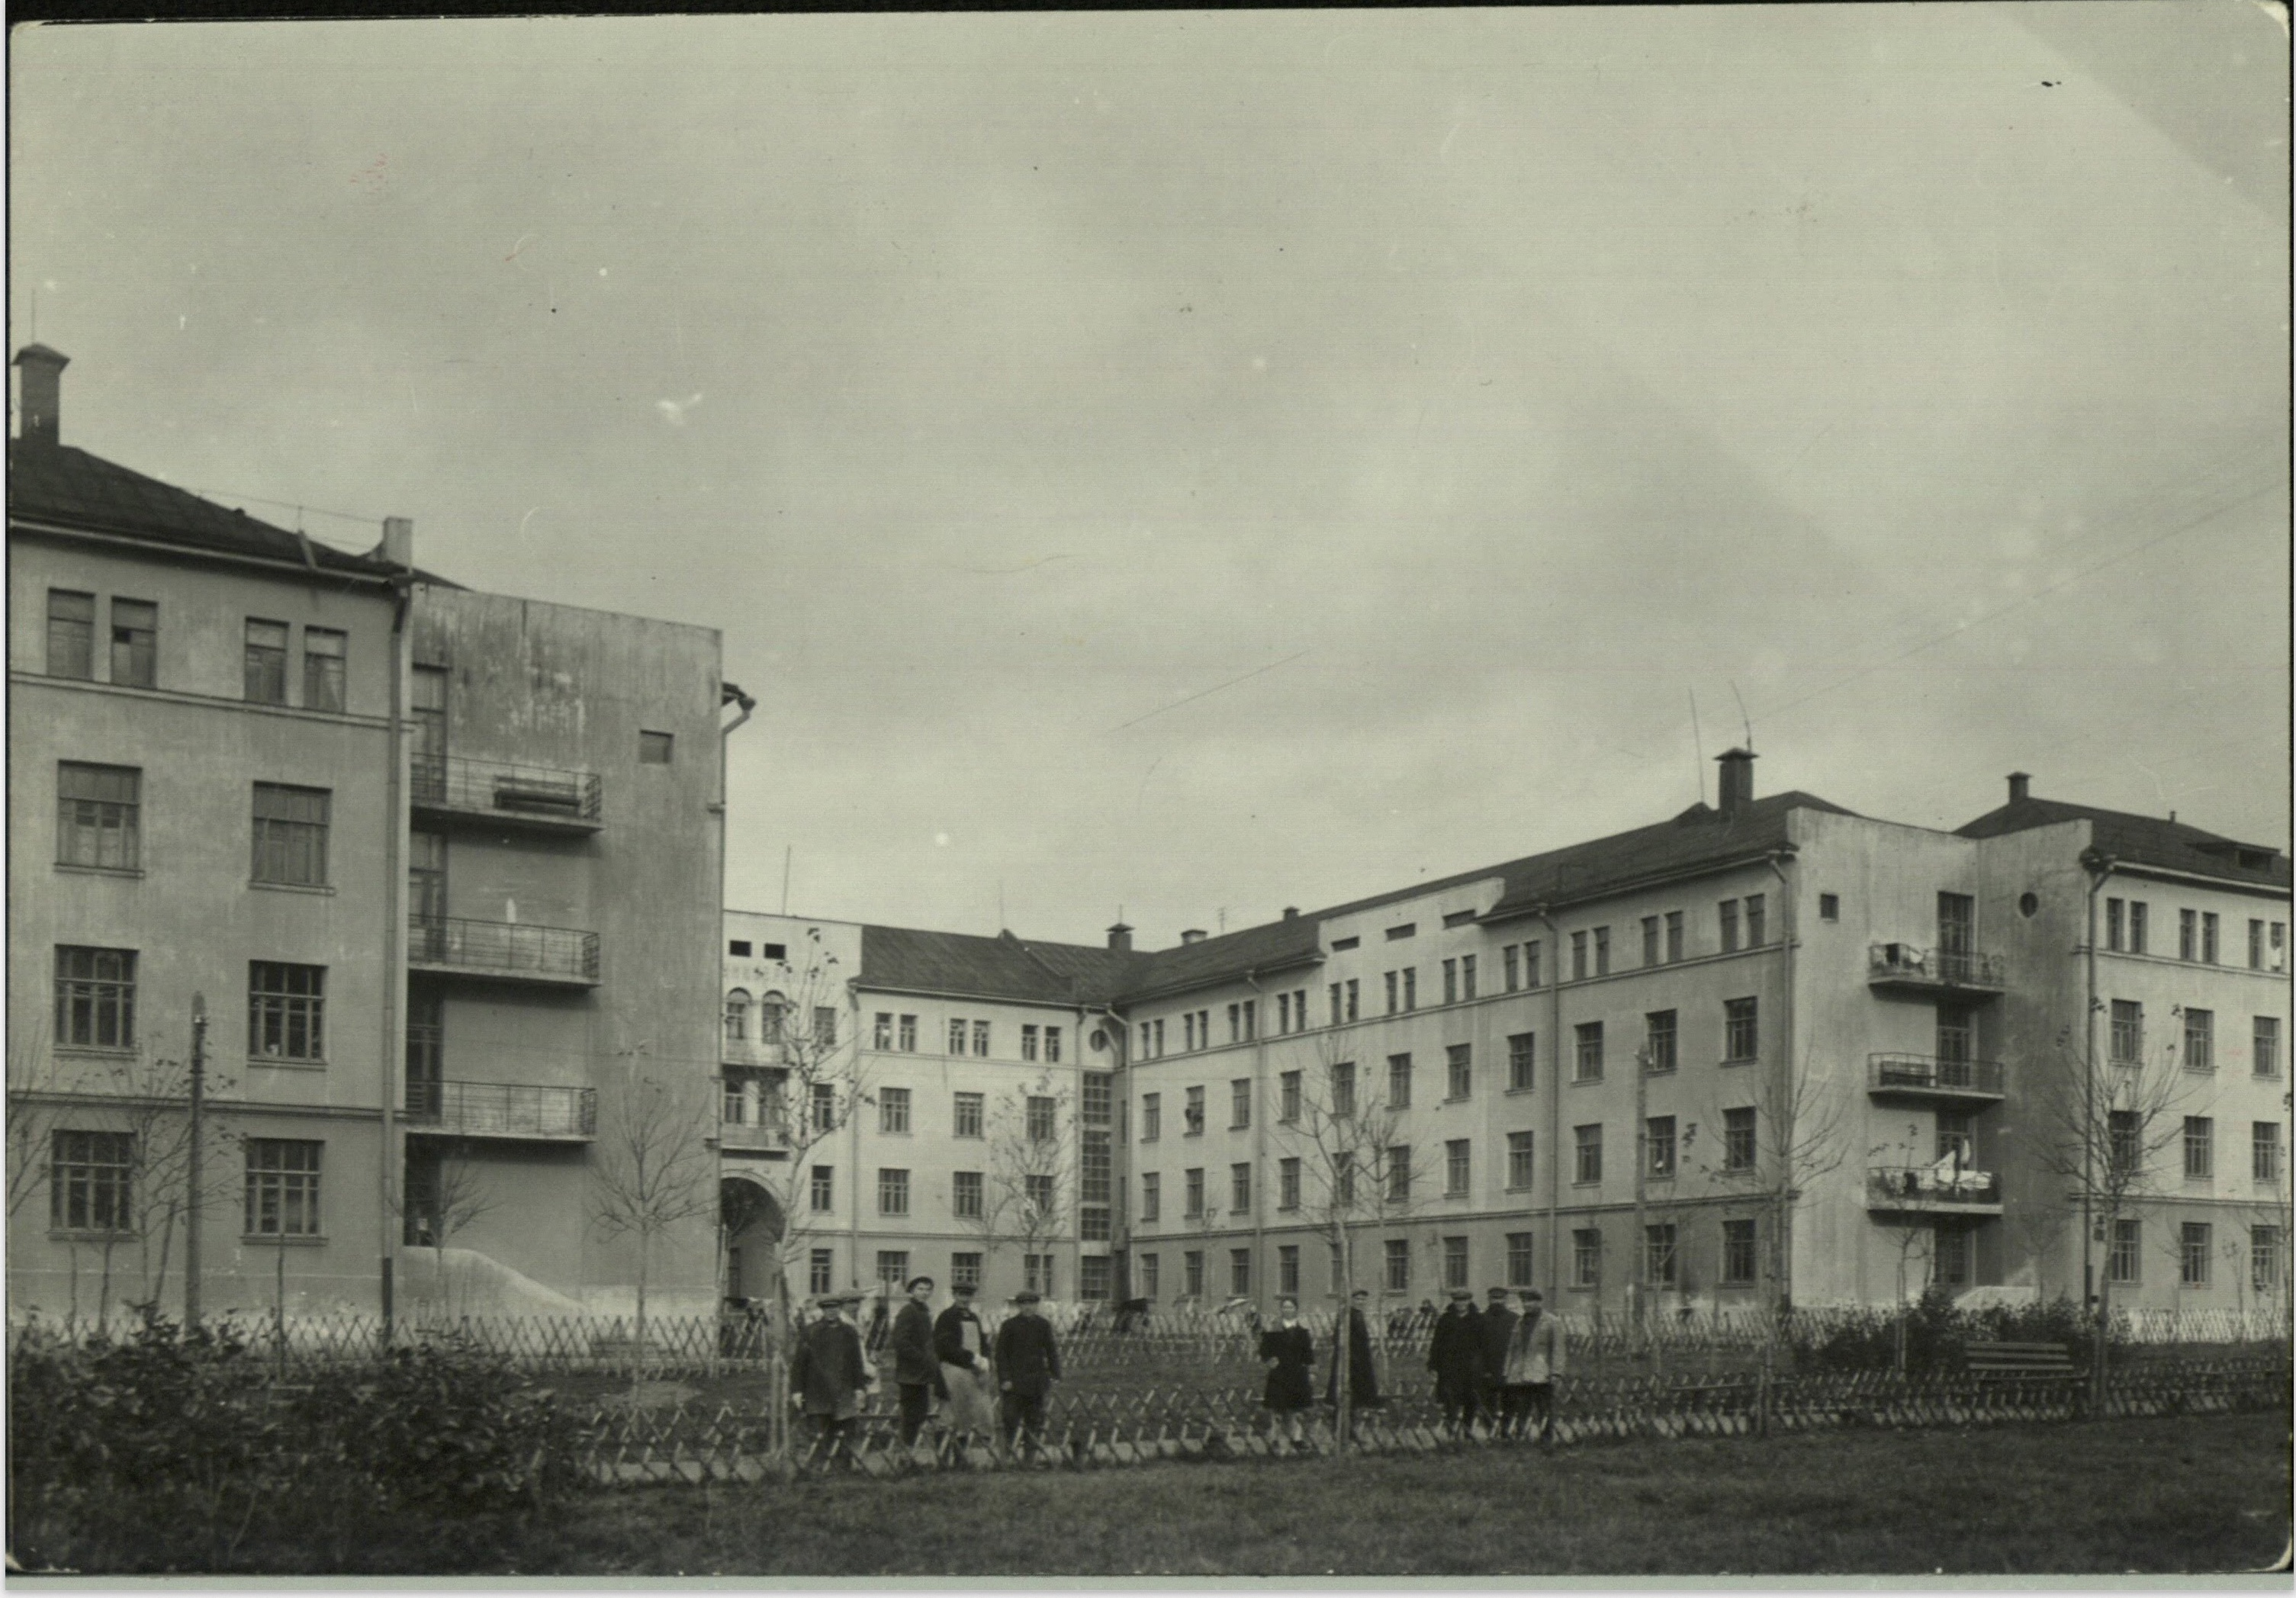 Margaret Bourke-White, New unident. apartment buildings (Moscow, 1931)